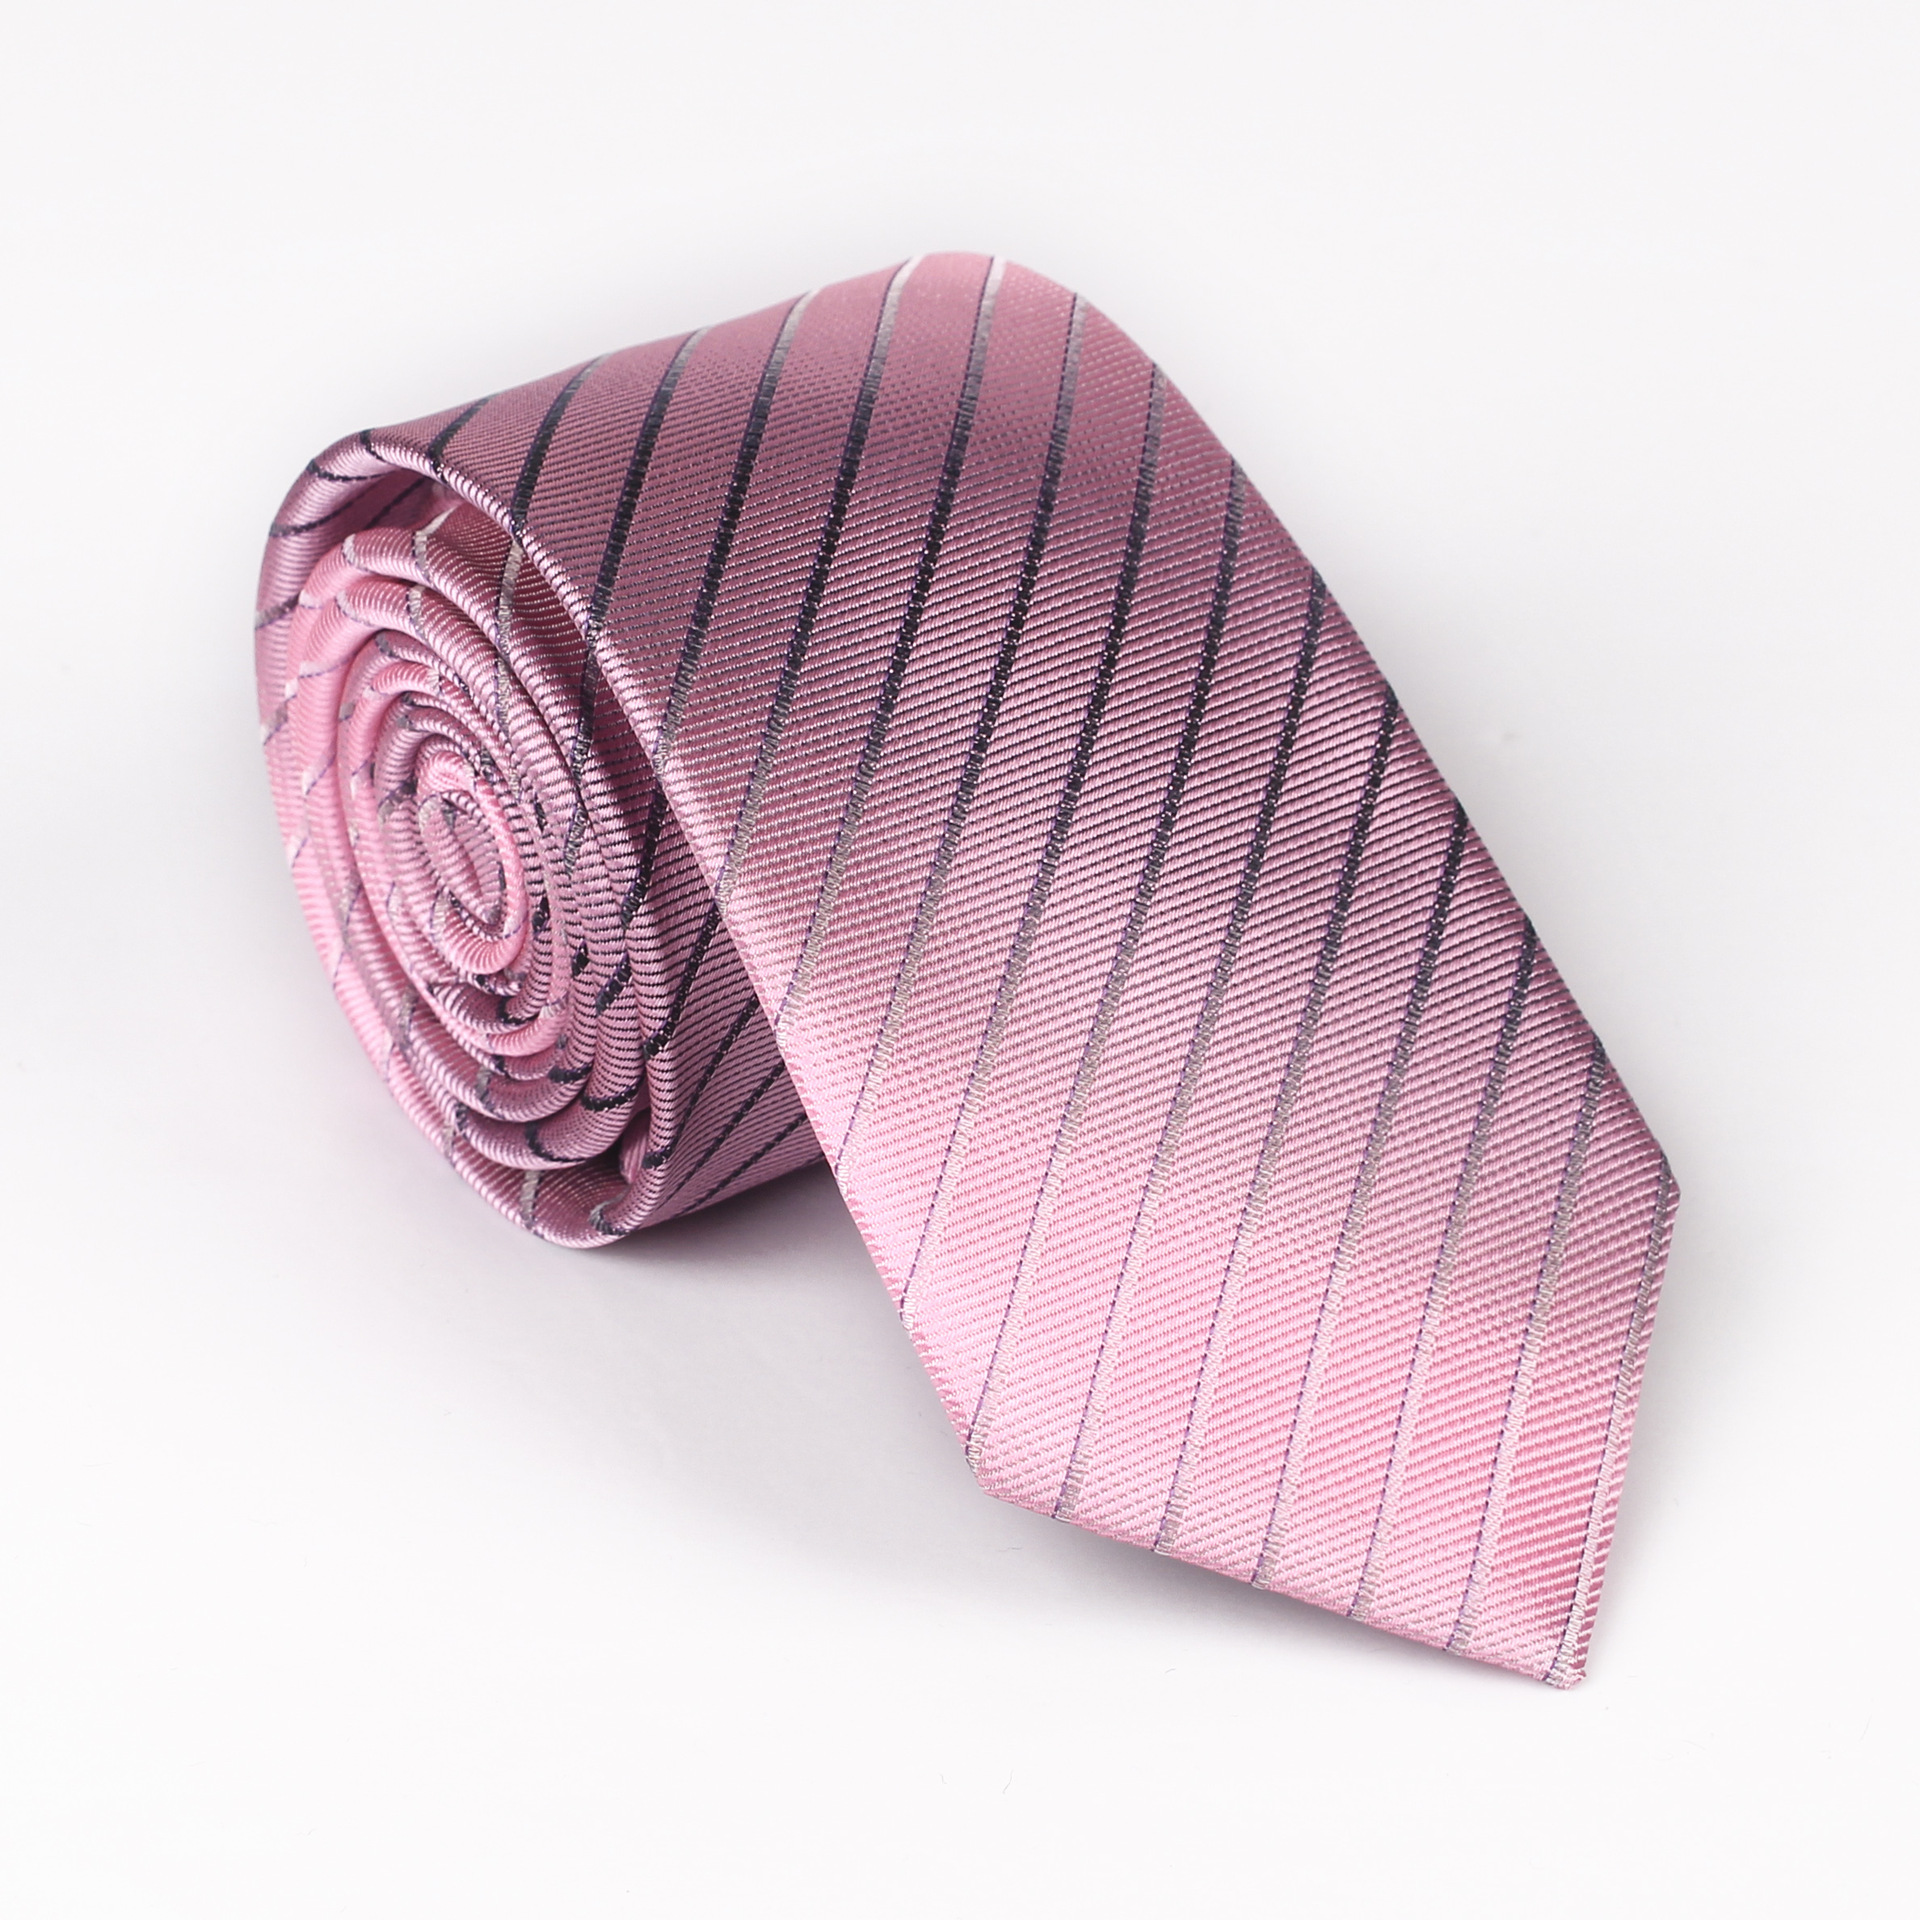 Spot A Generation Of Tie Men's 6cm Diagonal Stripes Tie Dress Polyester Silk Jacquard Business Narrow Tie Male